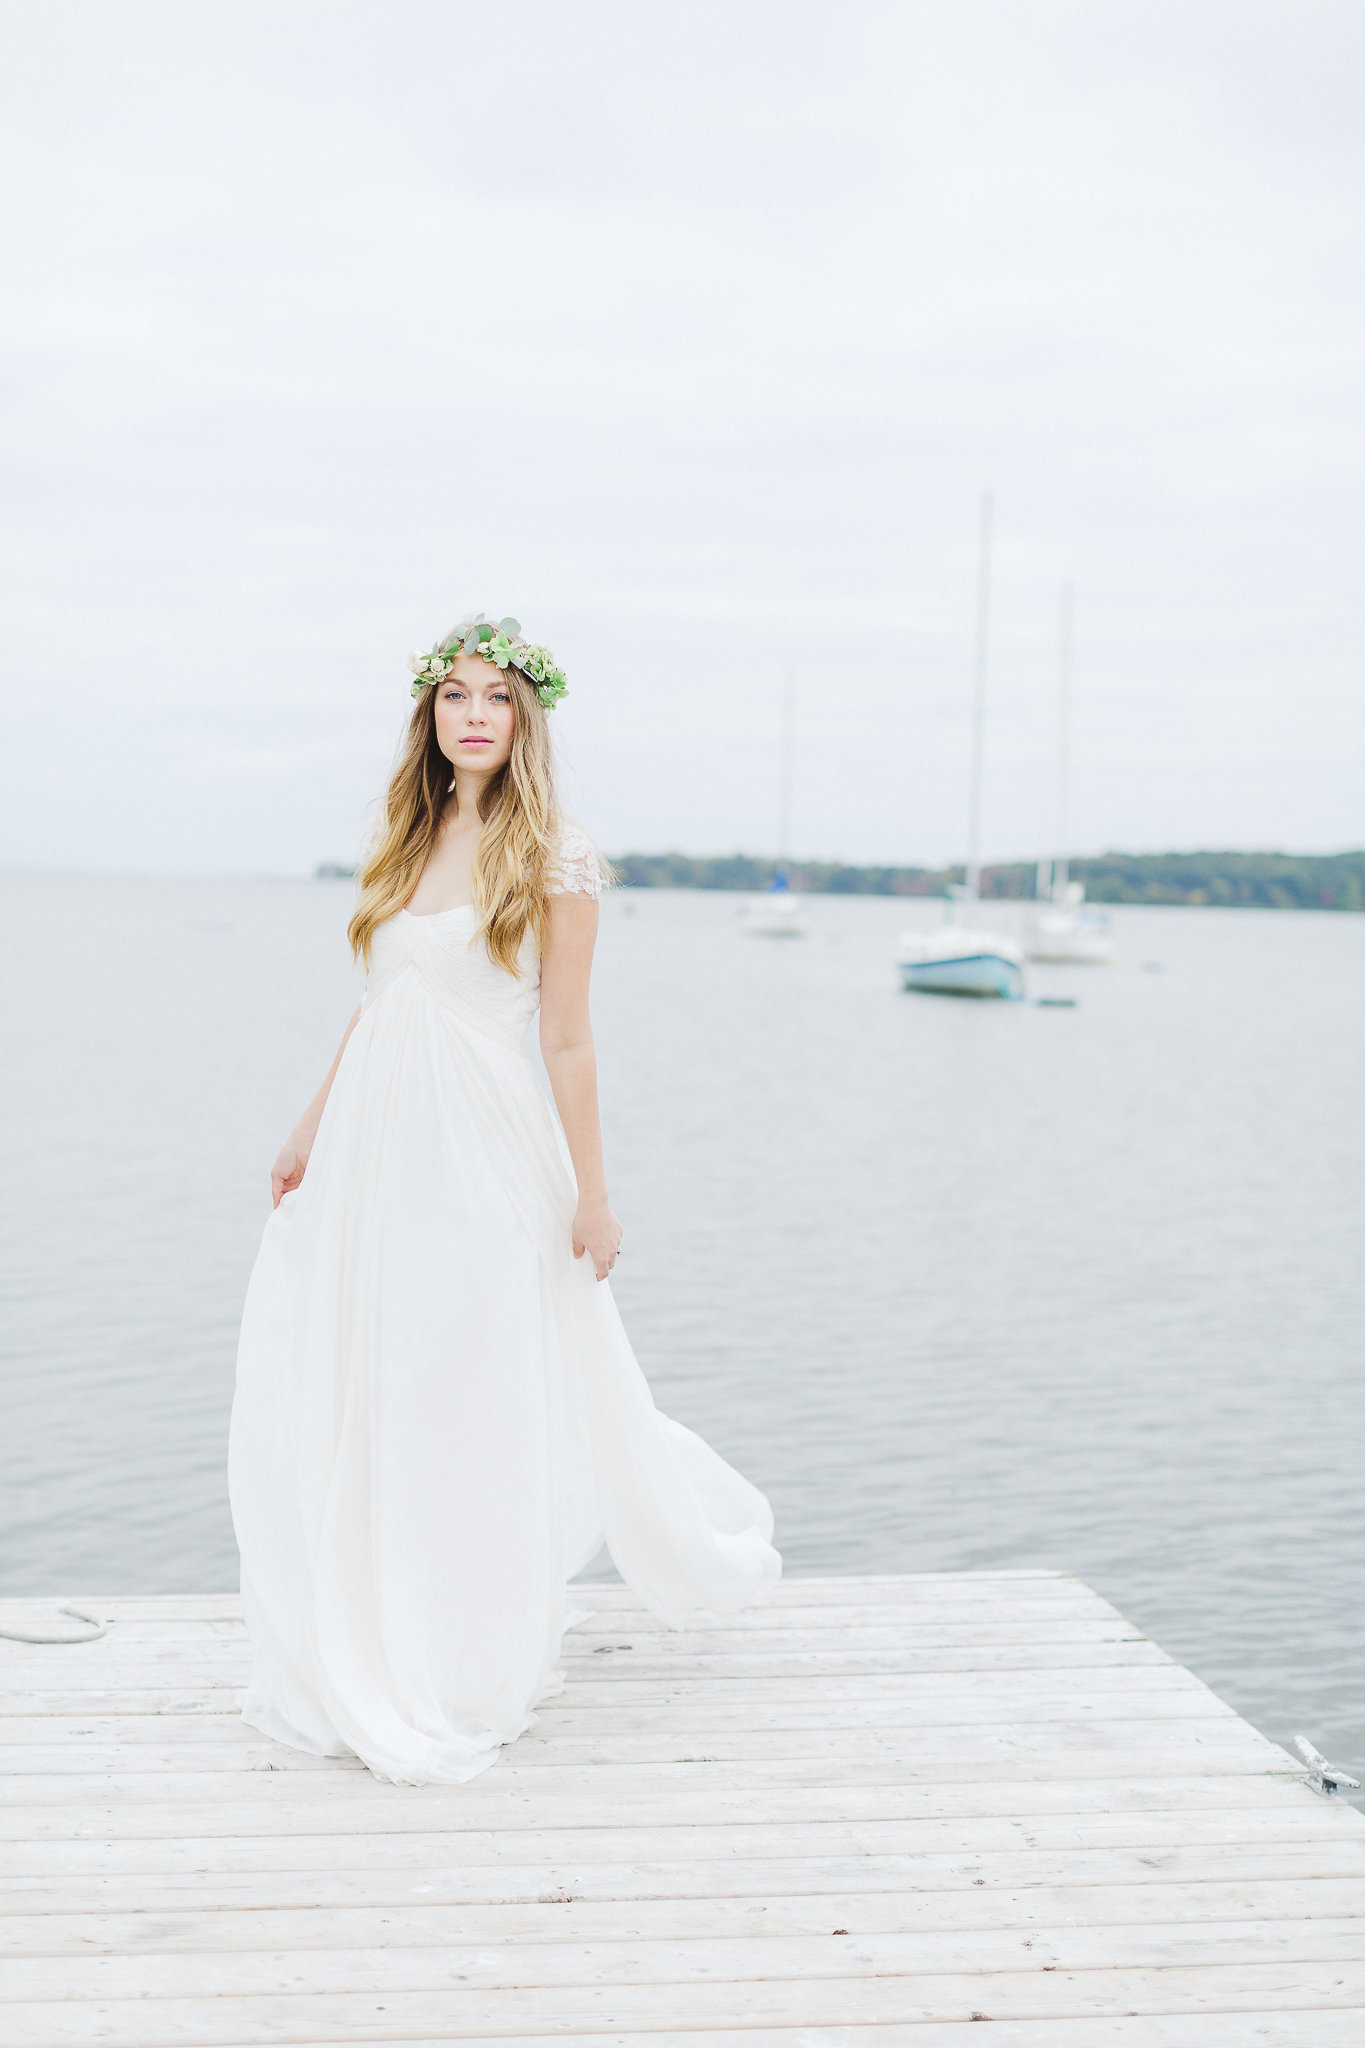 photographe-mariage-montreal-west-island-lisa-renault-photographie-montreal-wedding-photographer-38